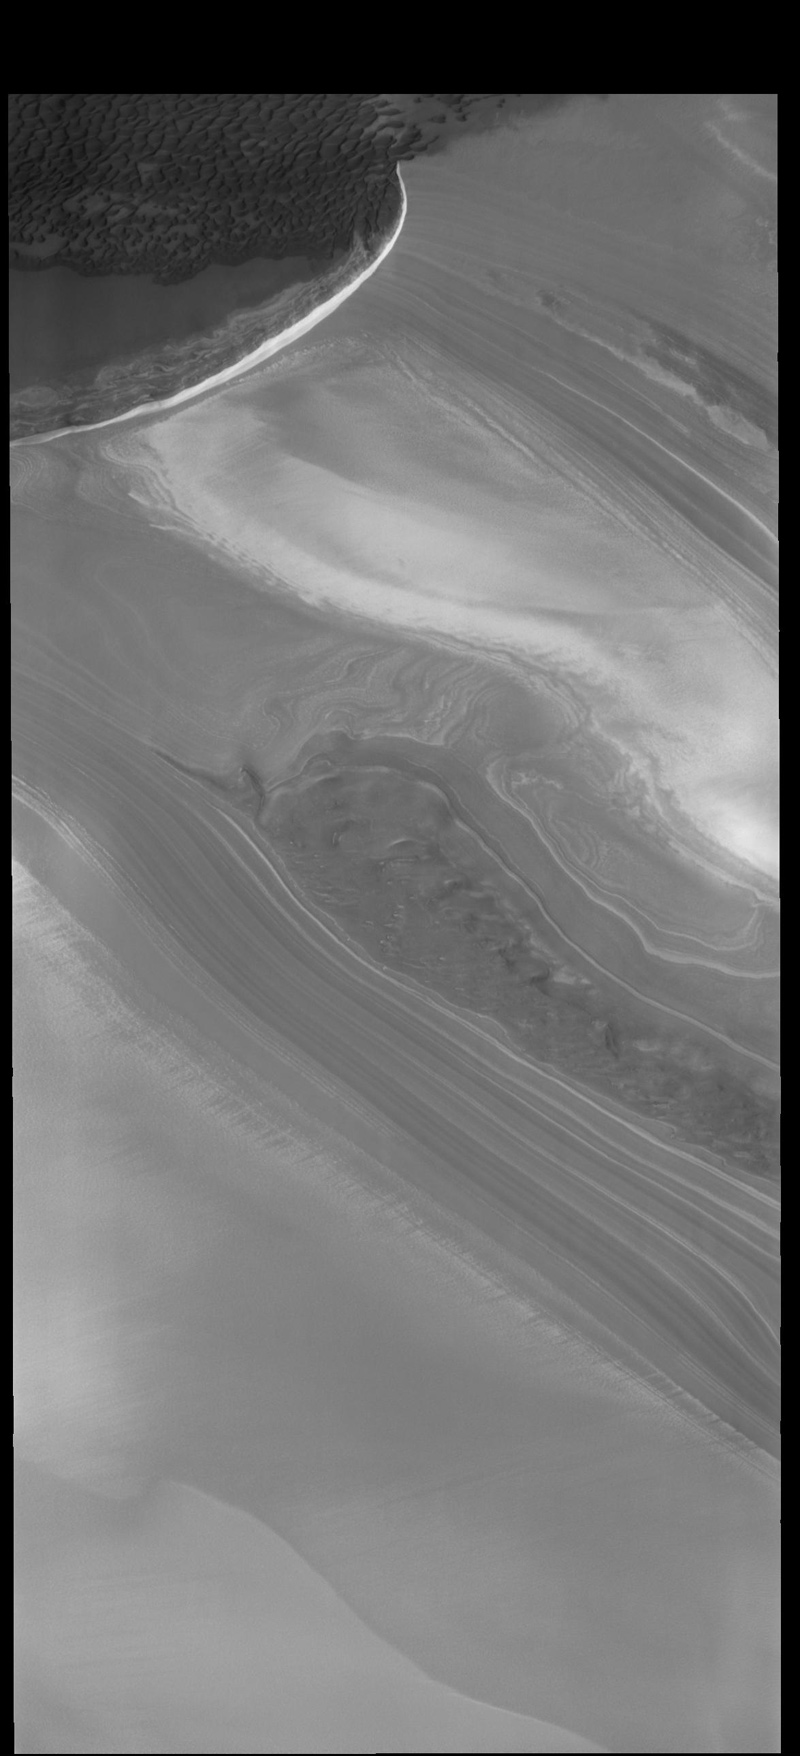 This image from NASA's 2001 Mars Odyssey spacecraft shows part of the margin of the north polar cap and the surrounding plains. The layering of the ice is easily visible due to the dust that is deposited on the top of the ice every year, creating layering over millions of years.